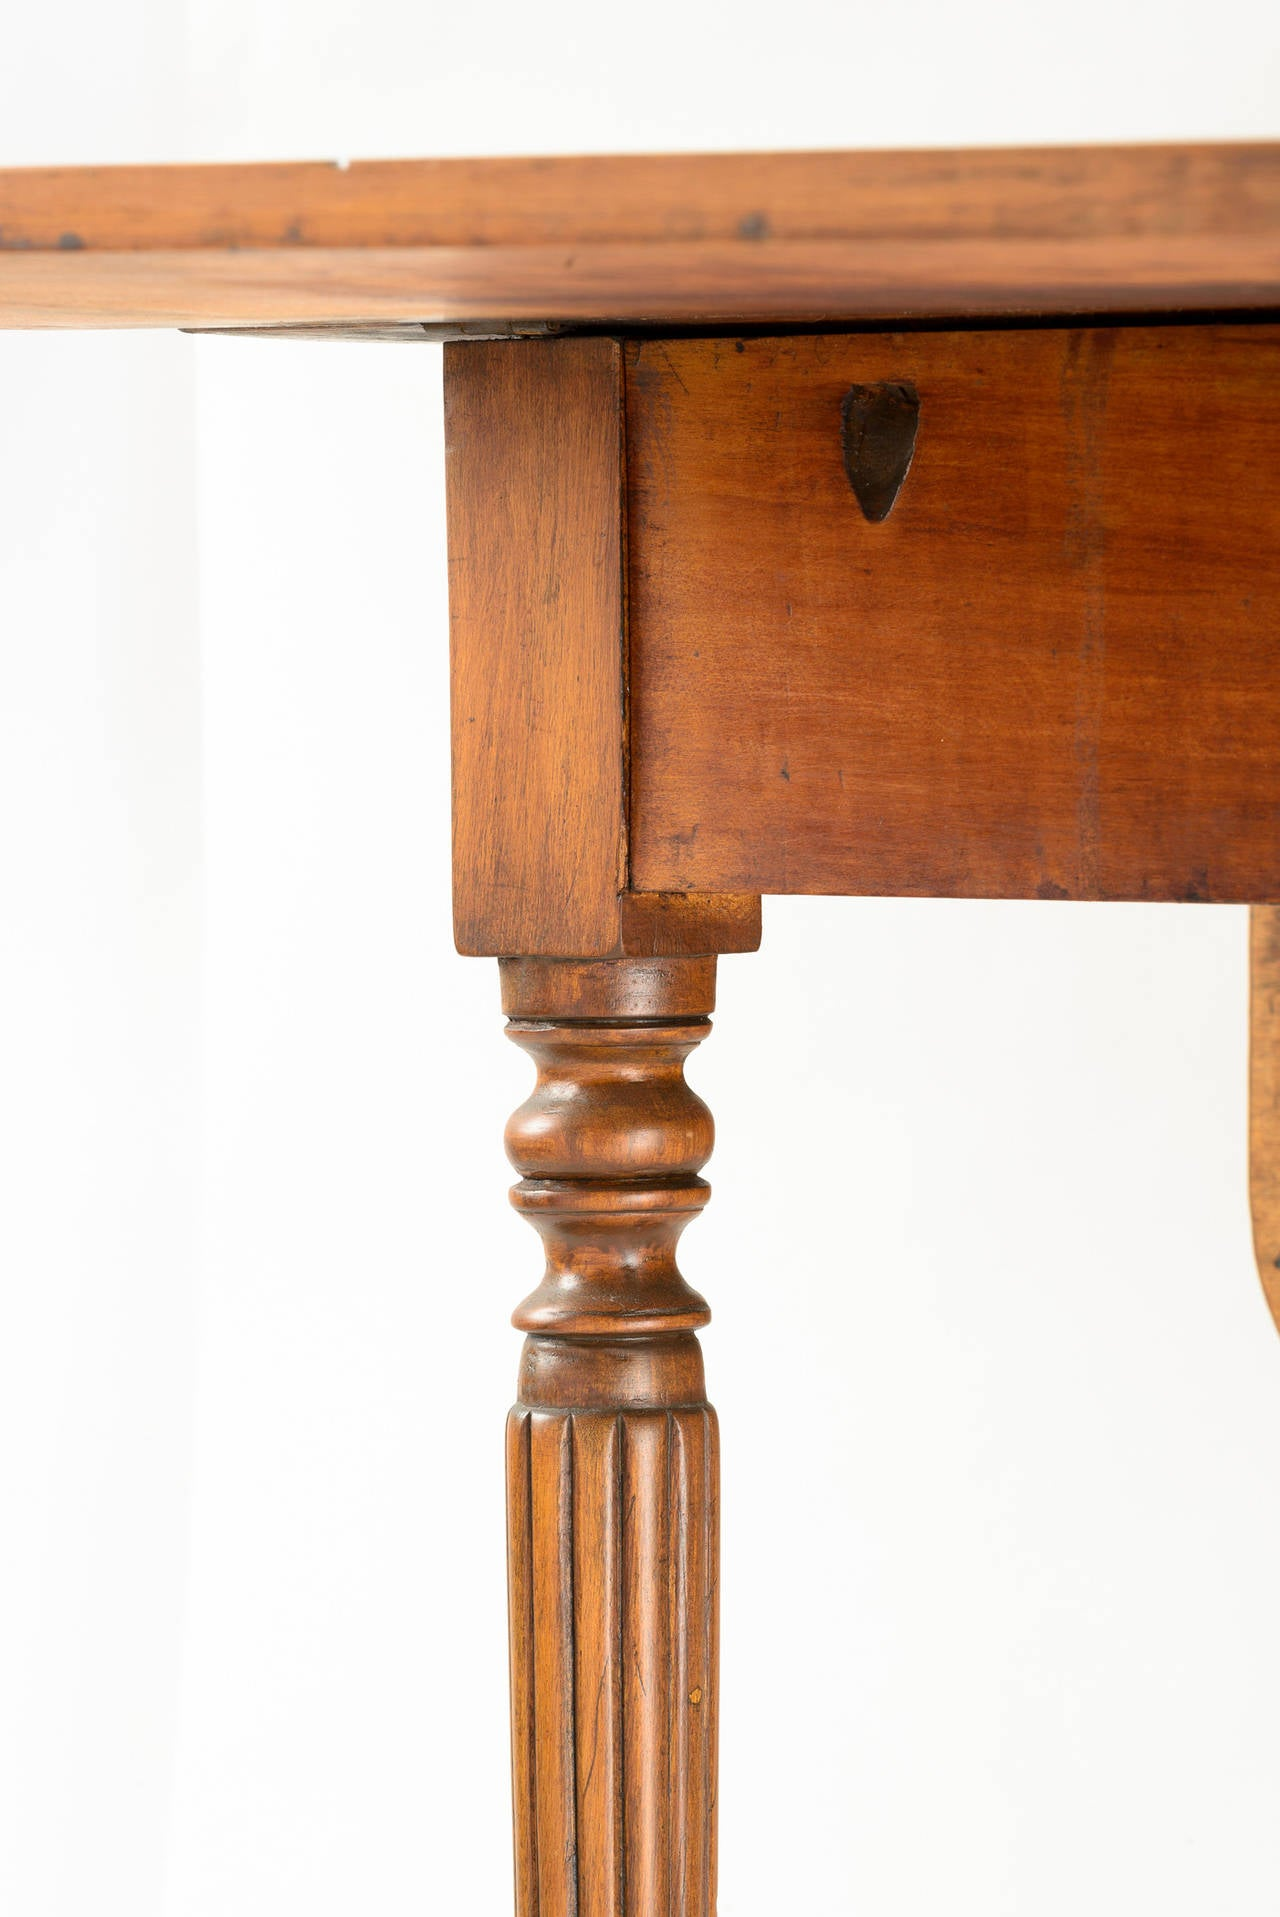 American Country Sheraton Gate Leg Table with Reeded Tapered Legs For Sale 2